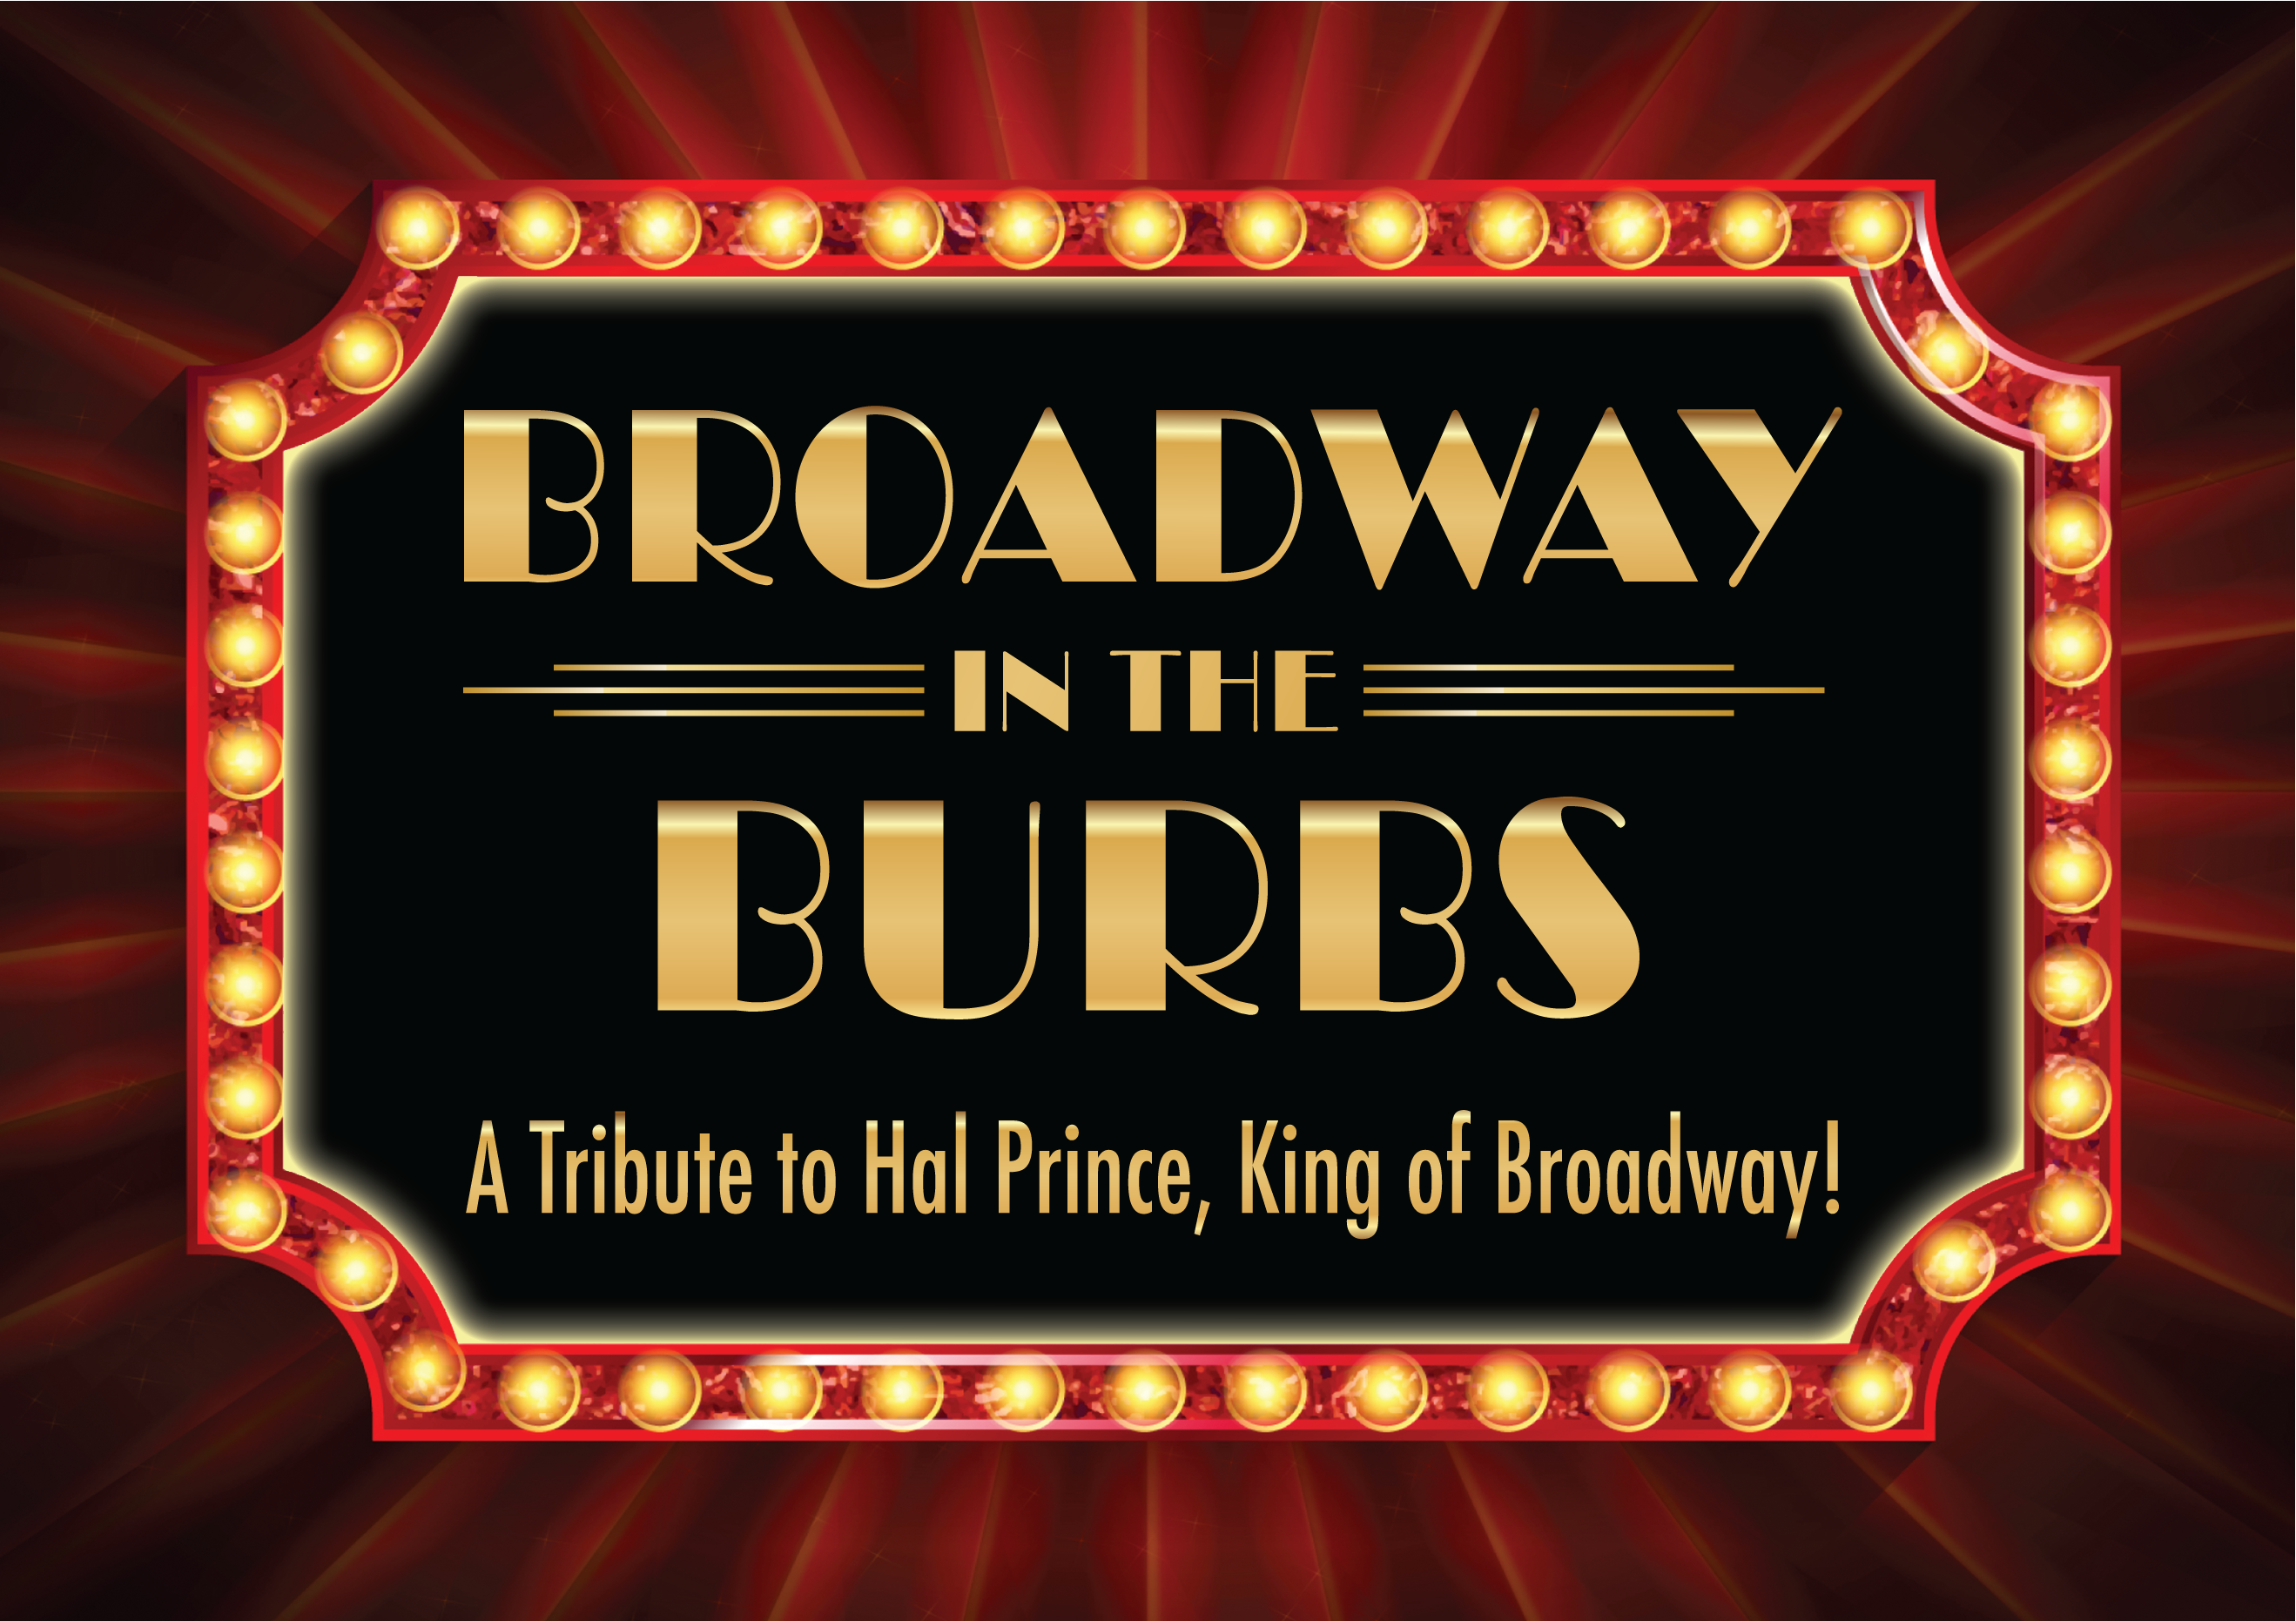 Broadway in the Burbs A Tribute to Hal Prince